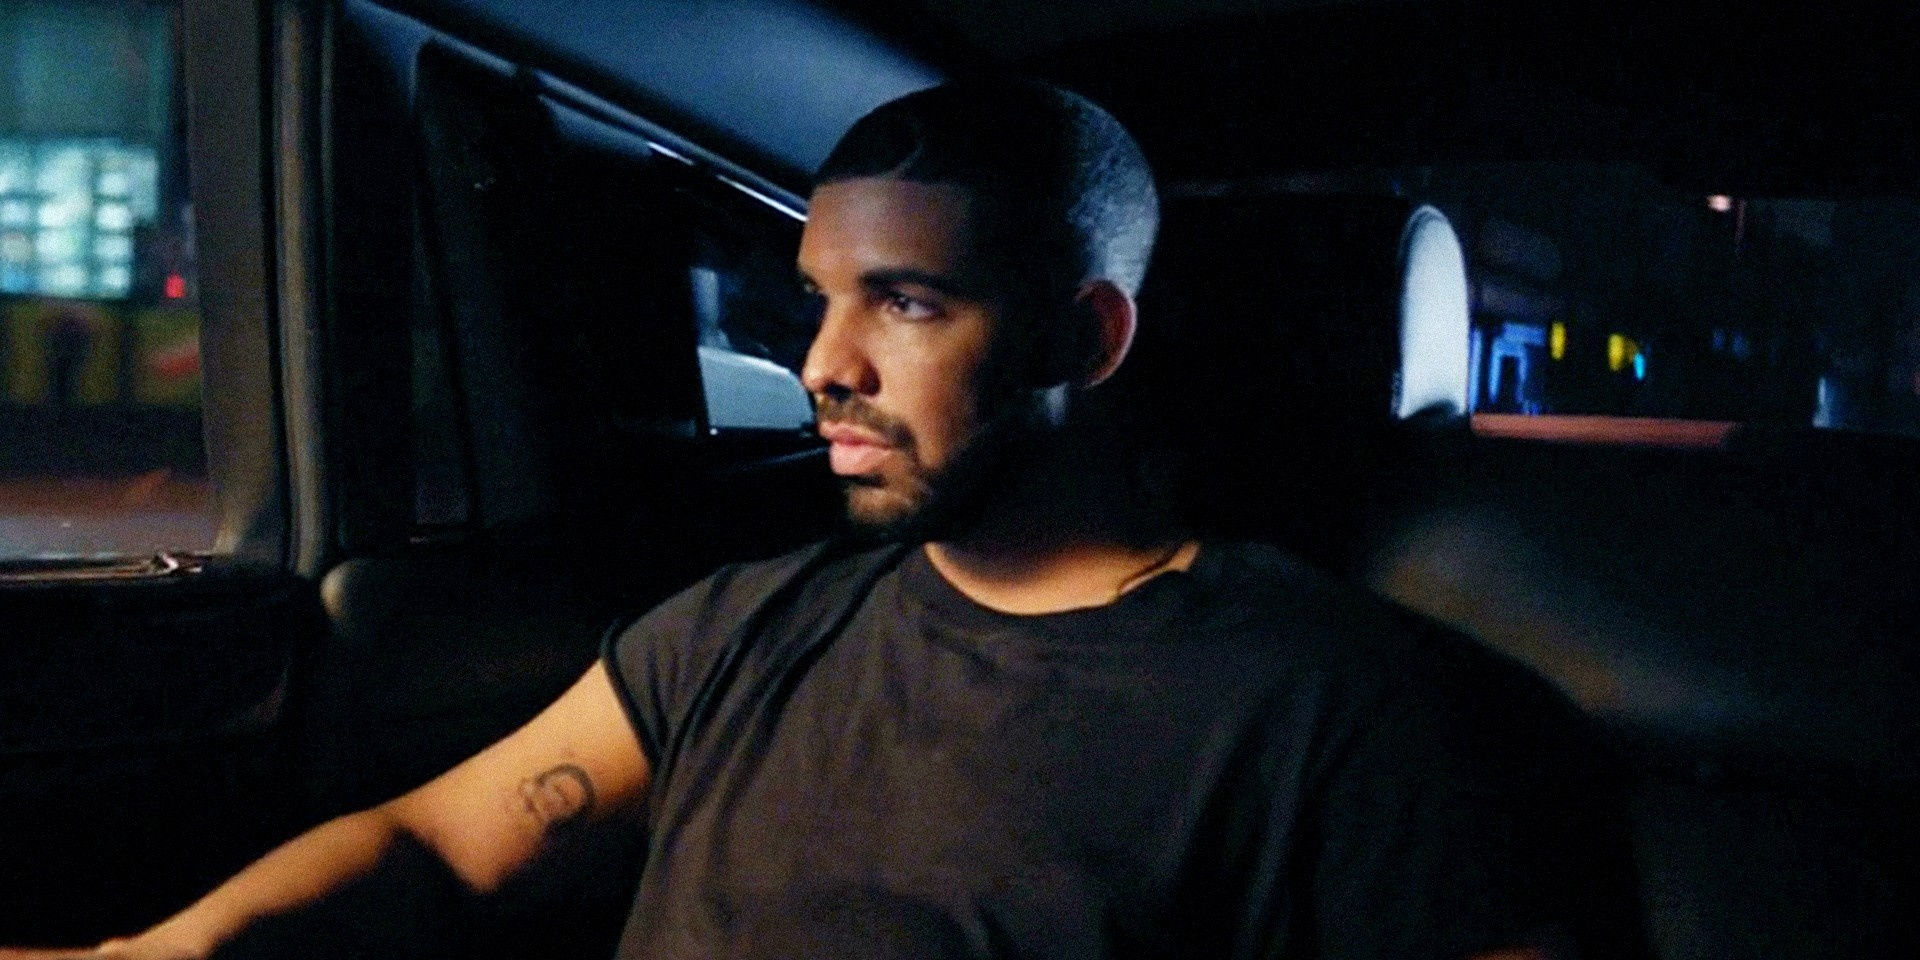 Drake releases a new two-track EP, and he's already come under fire for the artwork